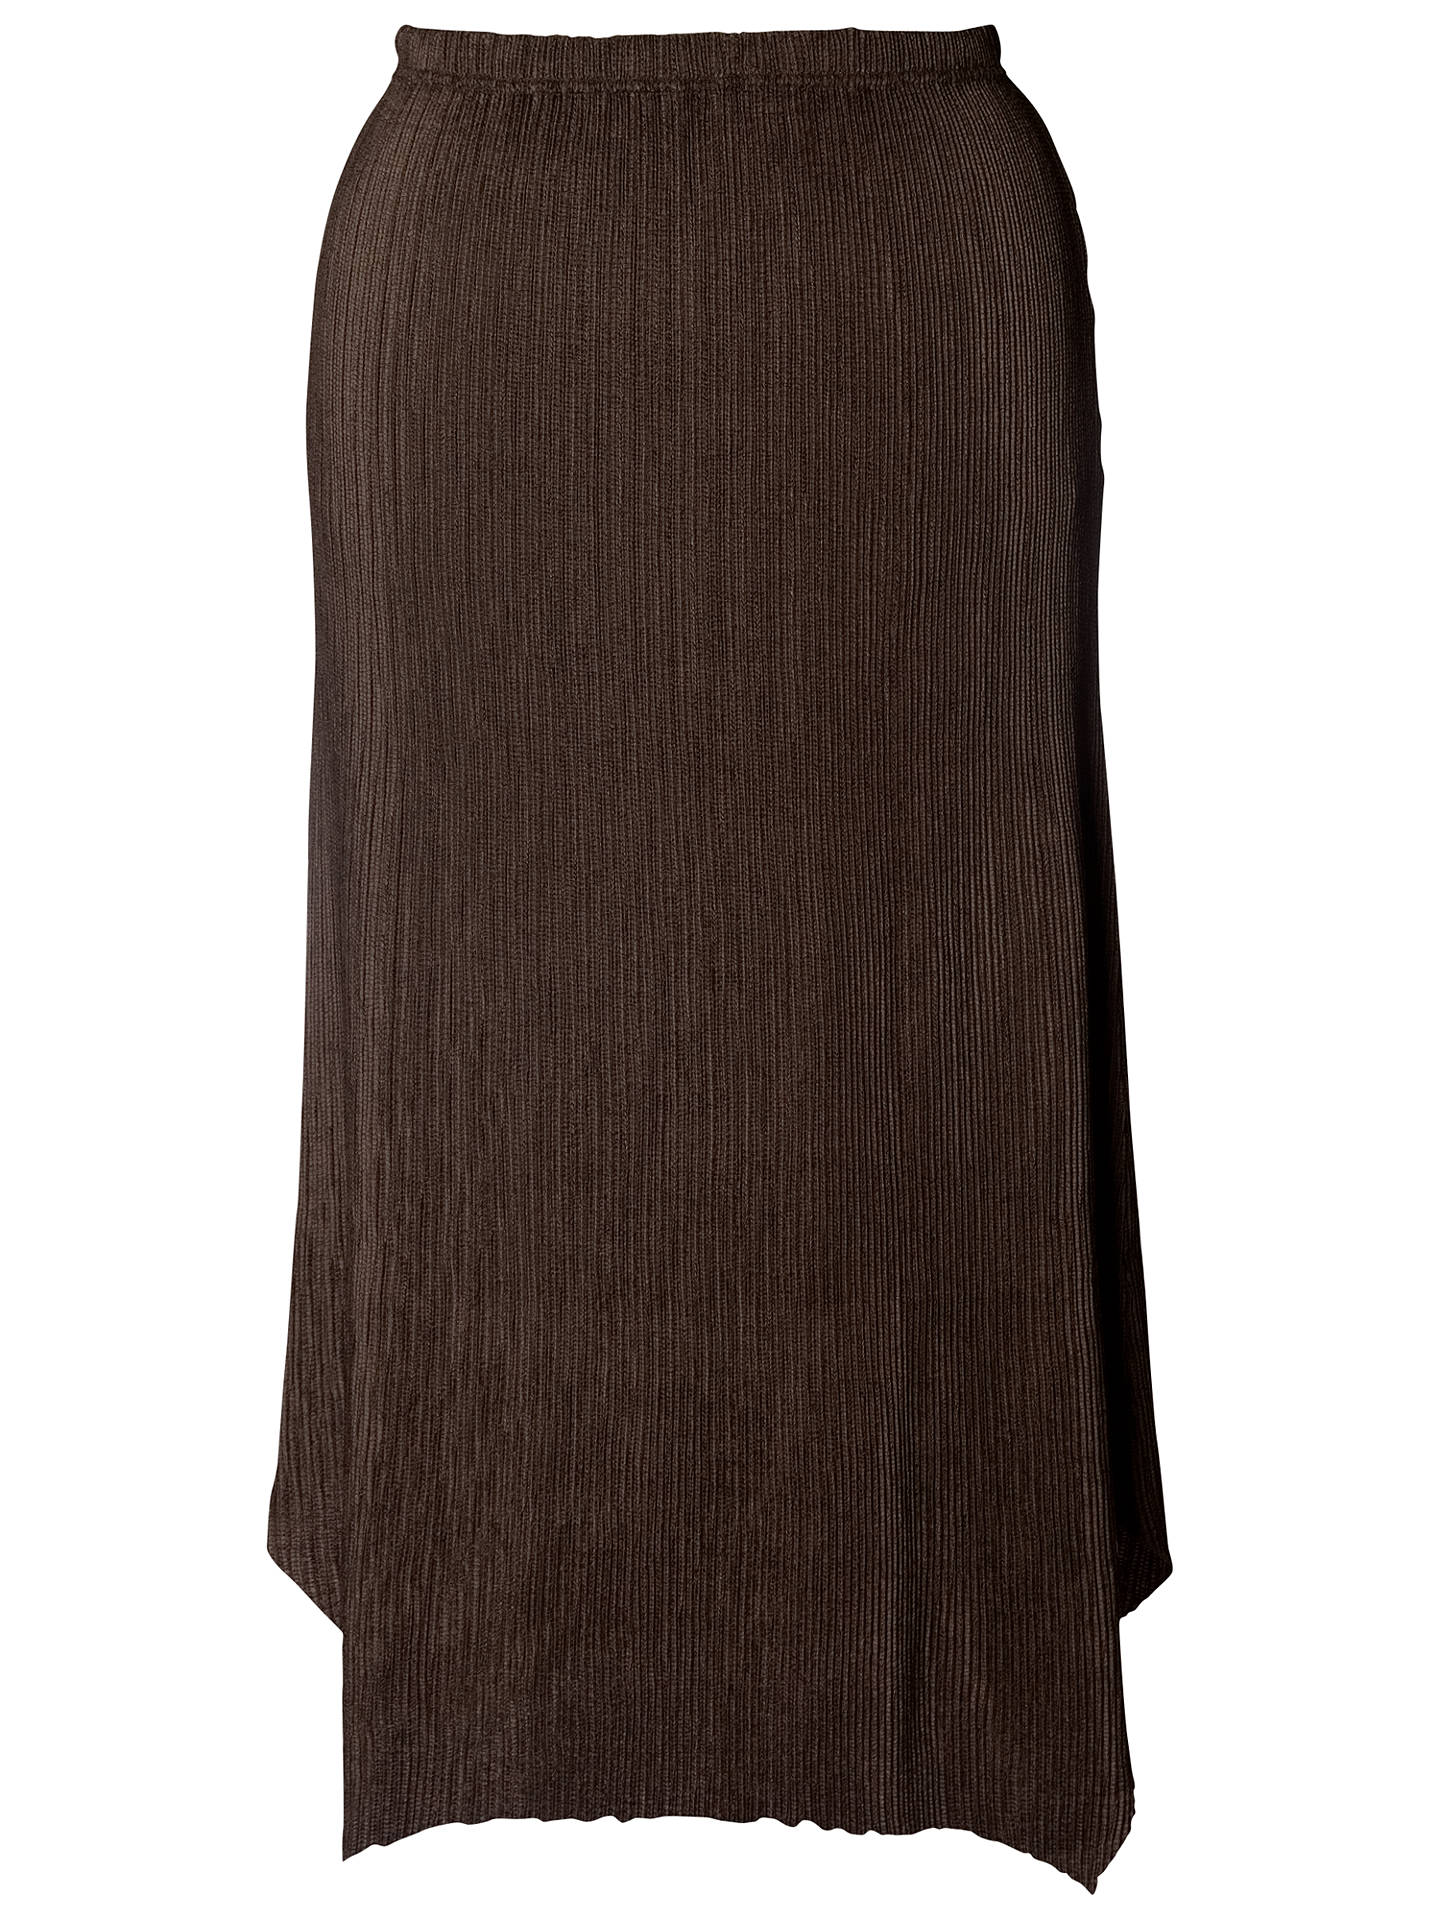 BuyChesca Double Pleated Skirt, Brown, 12 Online at johnlewis.com